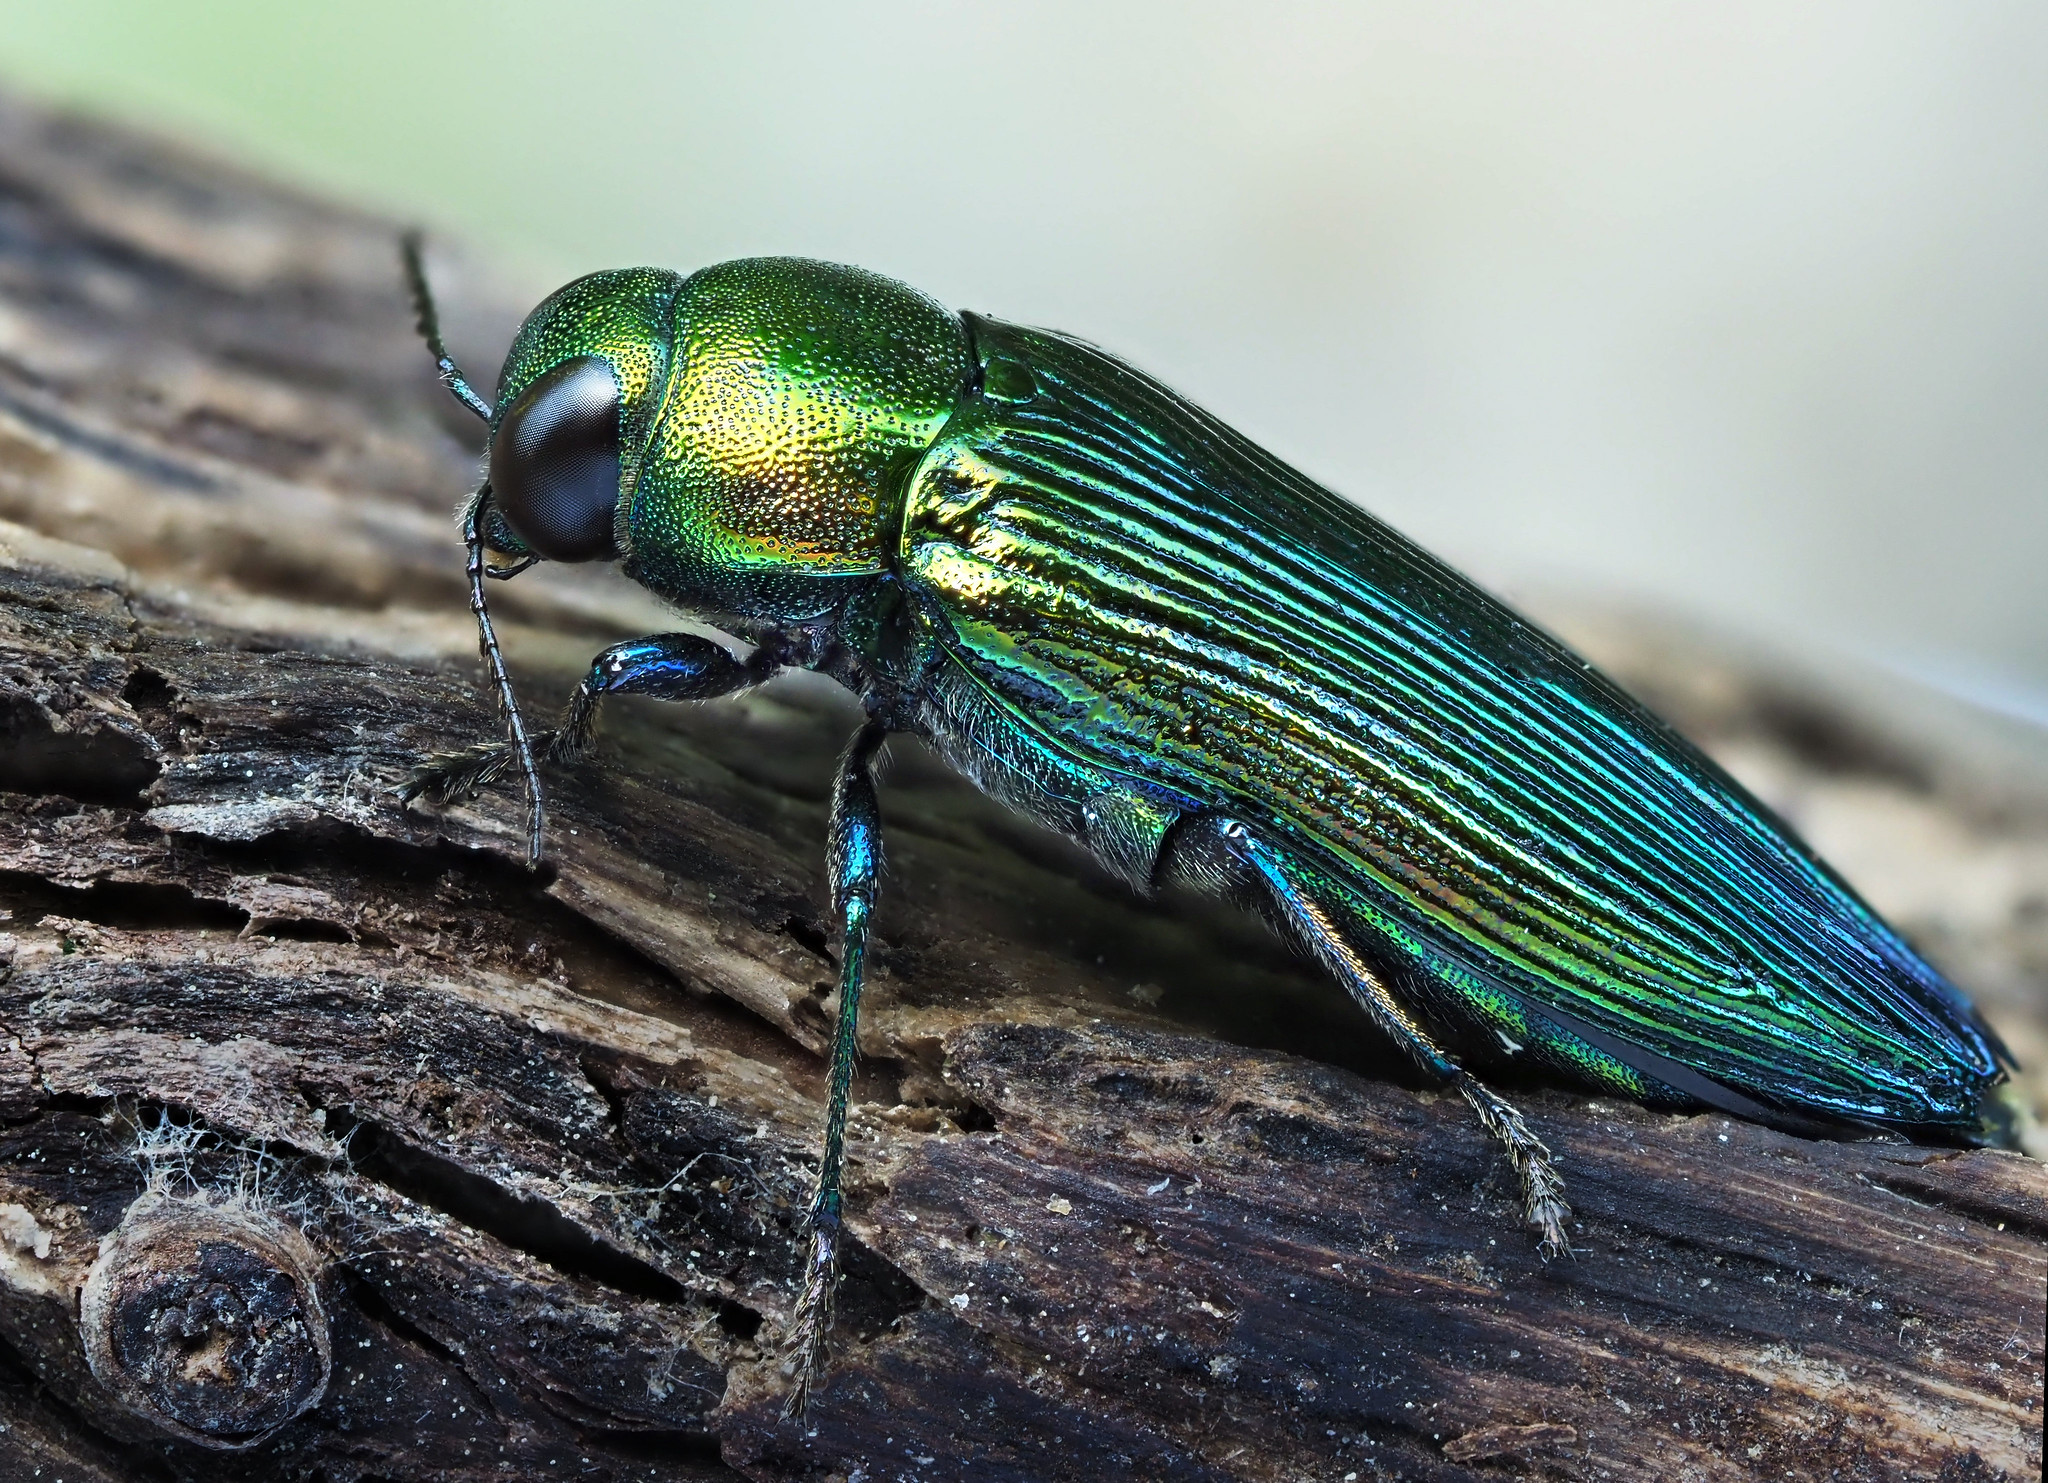 The oak jewel beetle (Eurythyrea quercus) is one of the most endangered beetle species in Europe. It requires old, dry oaks to develop, which are seldom left in the landscape. Photo by Frank Vassen via Flickr (CC BY 2.0)